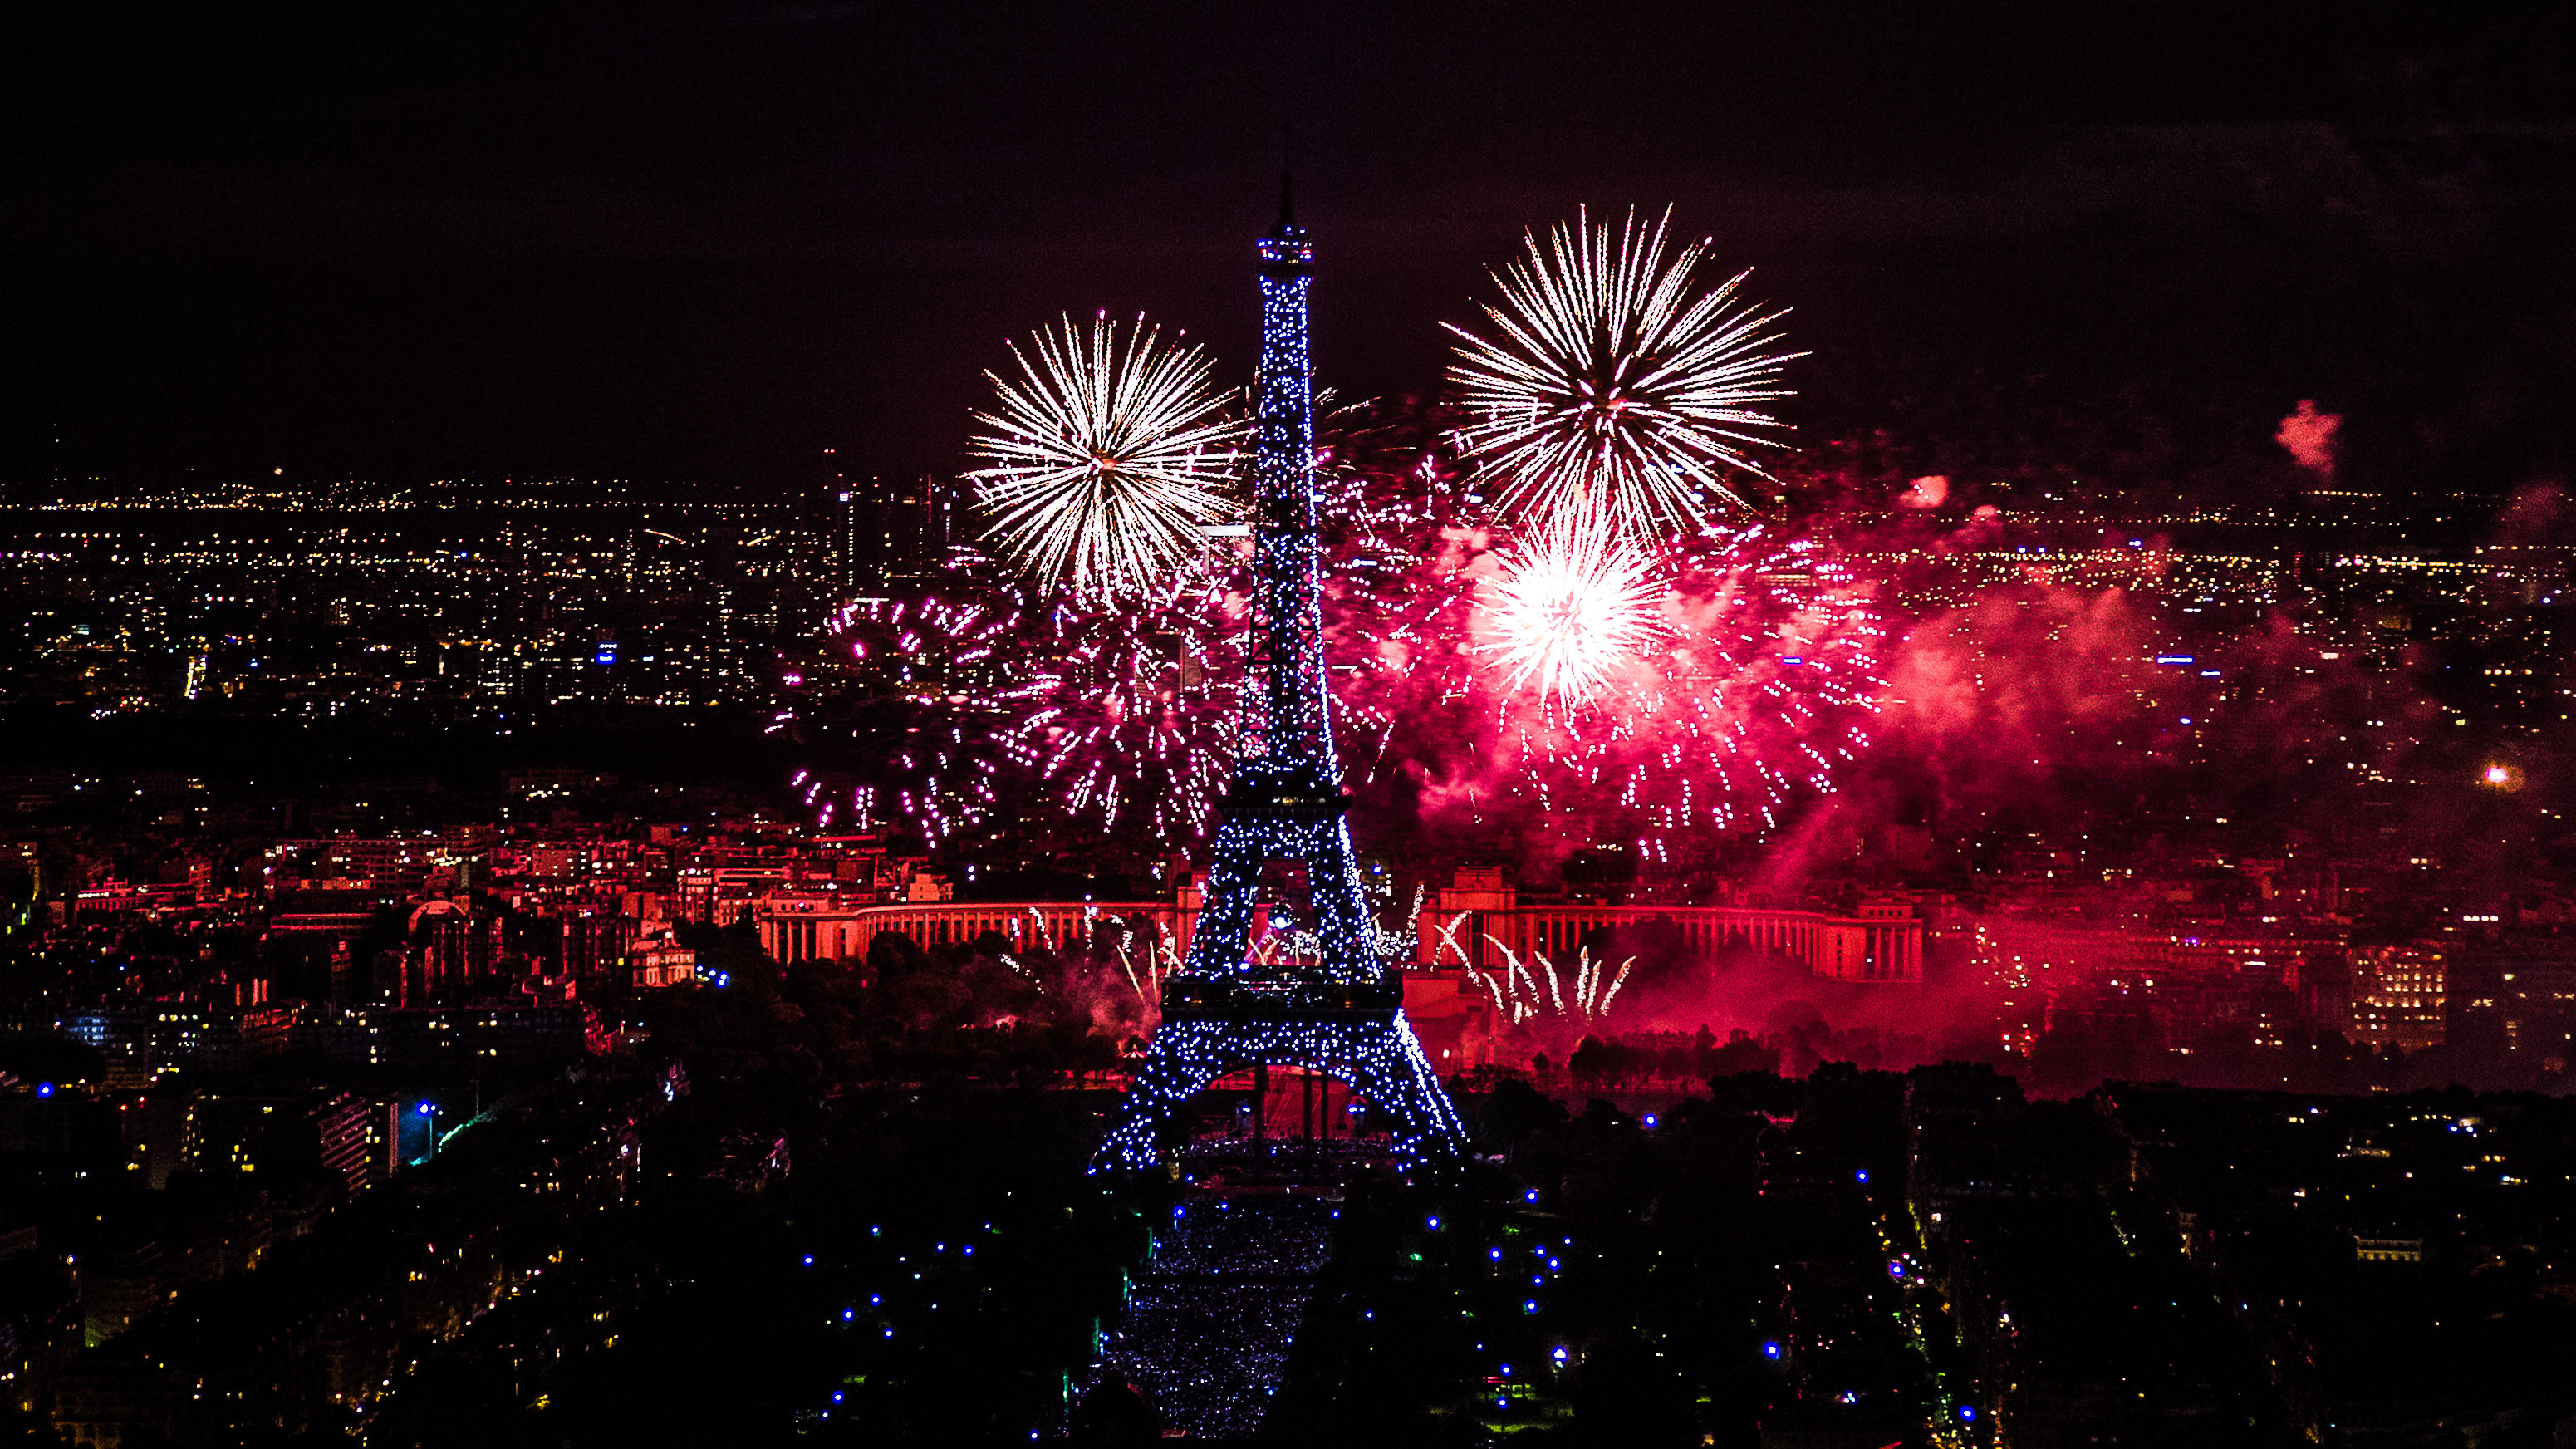 fireworks celebrations night eiffel tower paris hd download wallpapers